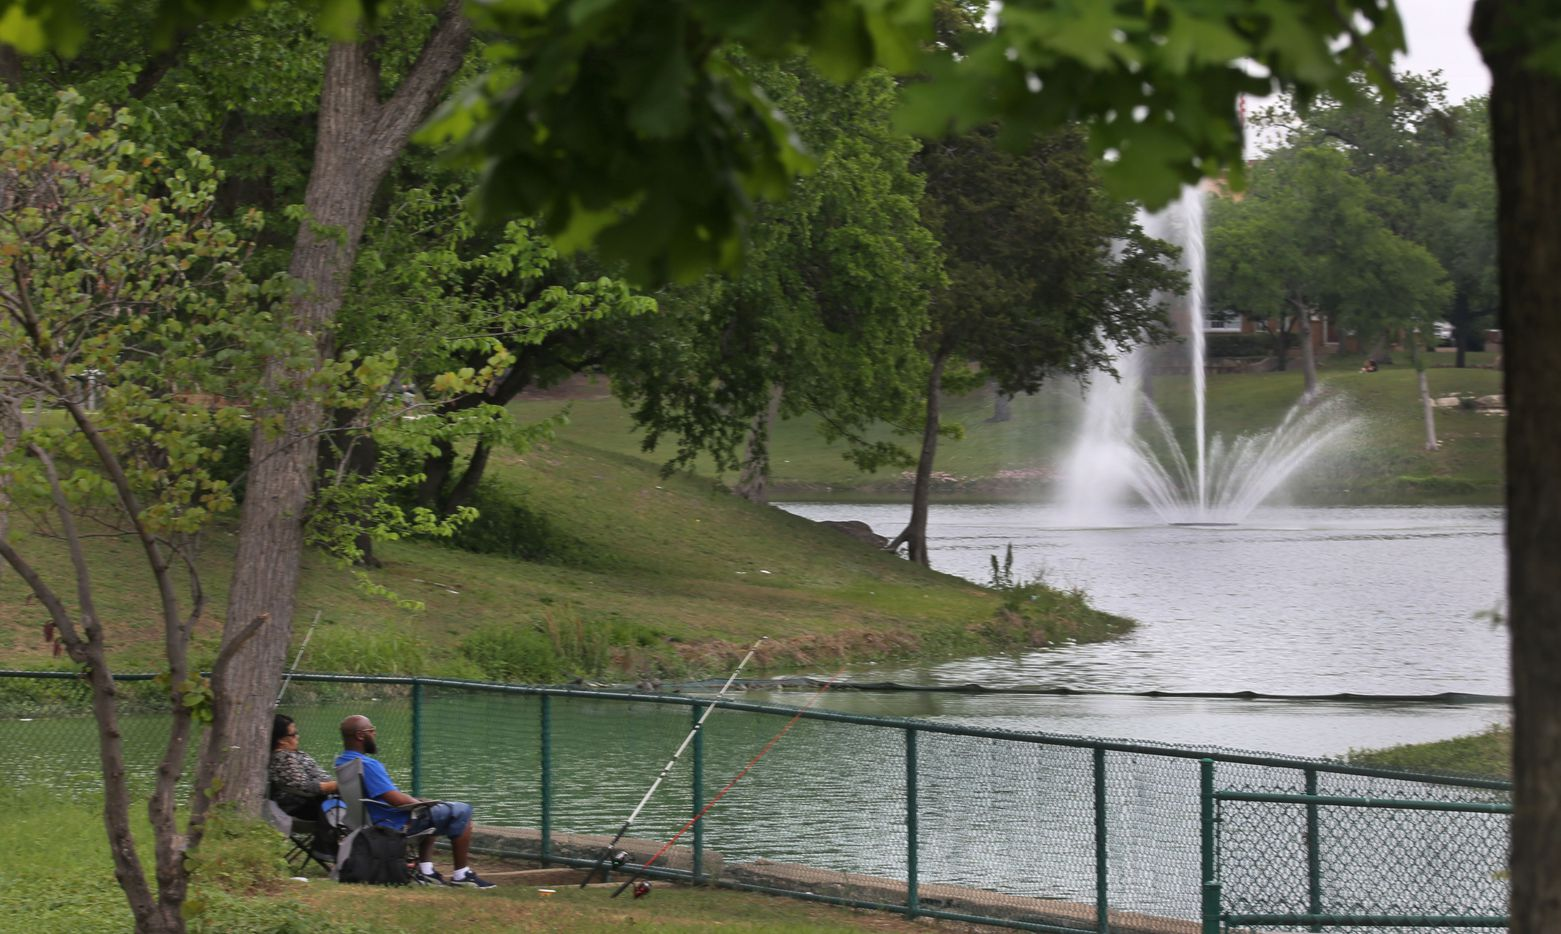 You can enjoy a relaxing afternoon of fishing at the Lake Cliff Park, 300 E. Colorado Blvd., on the route of the Oak Cliff streetcar south of downtown Dallas on Wednesday, April 12, 2017.